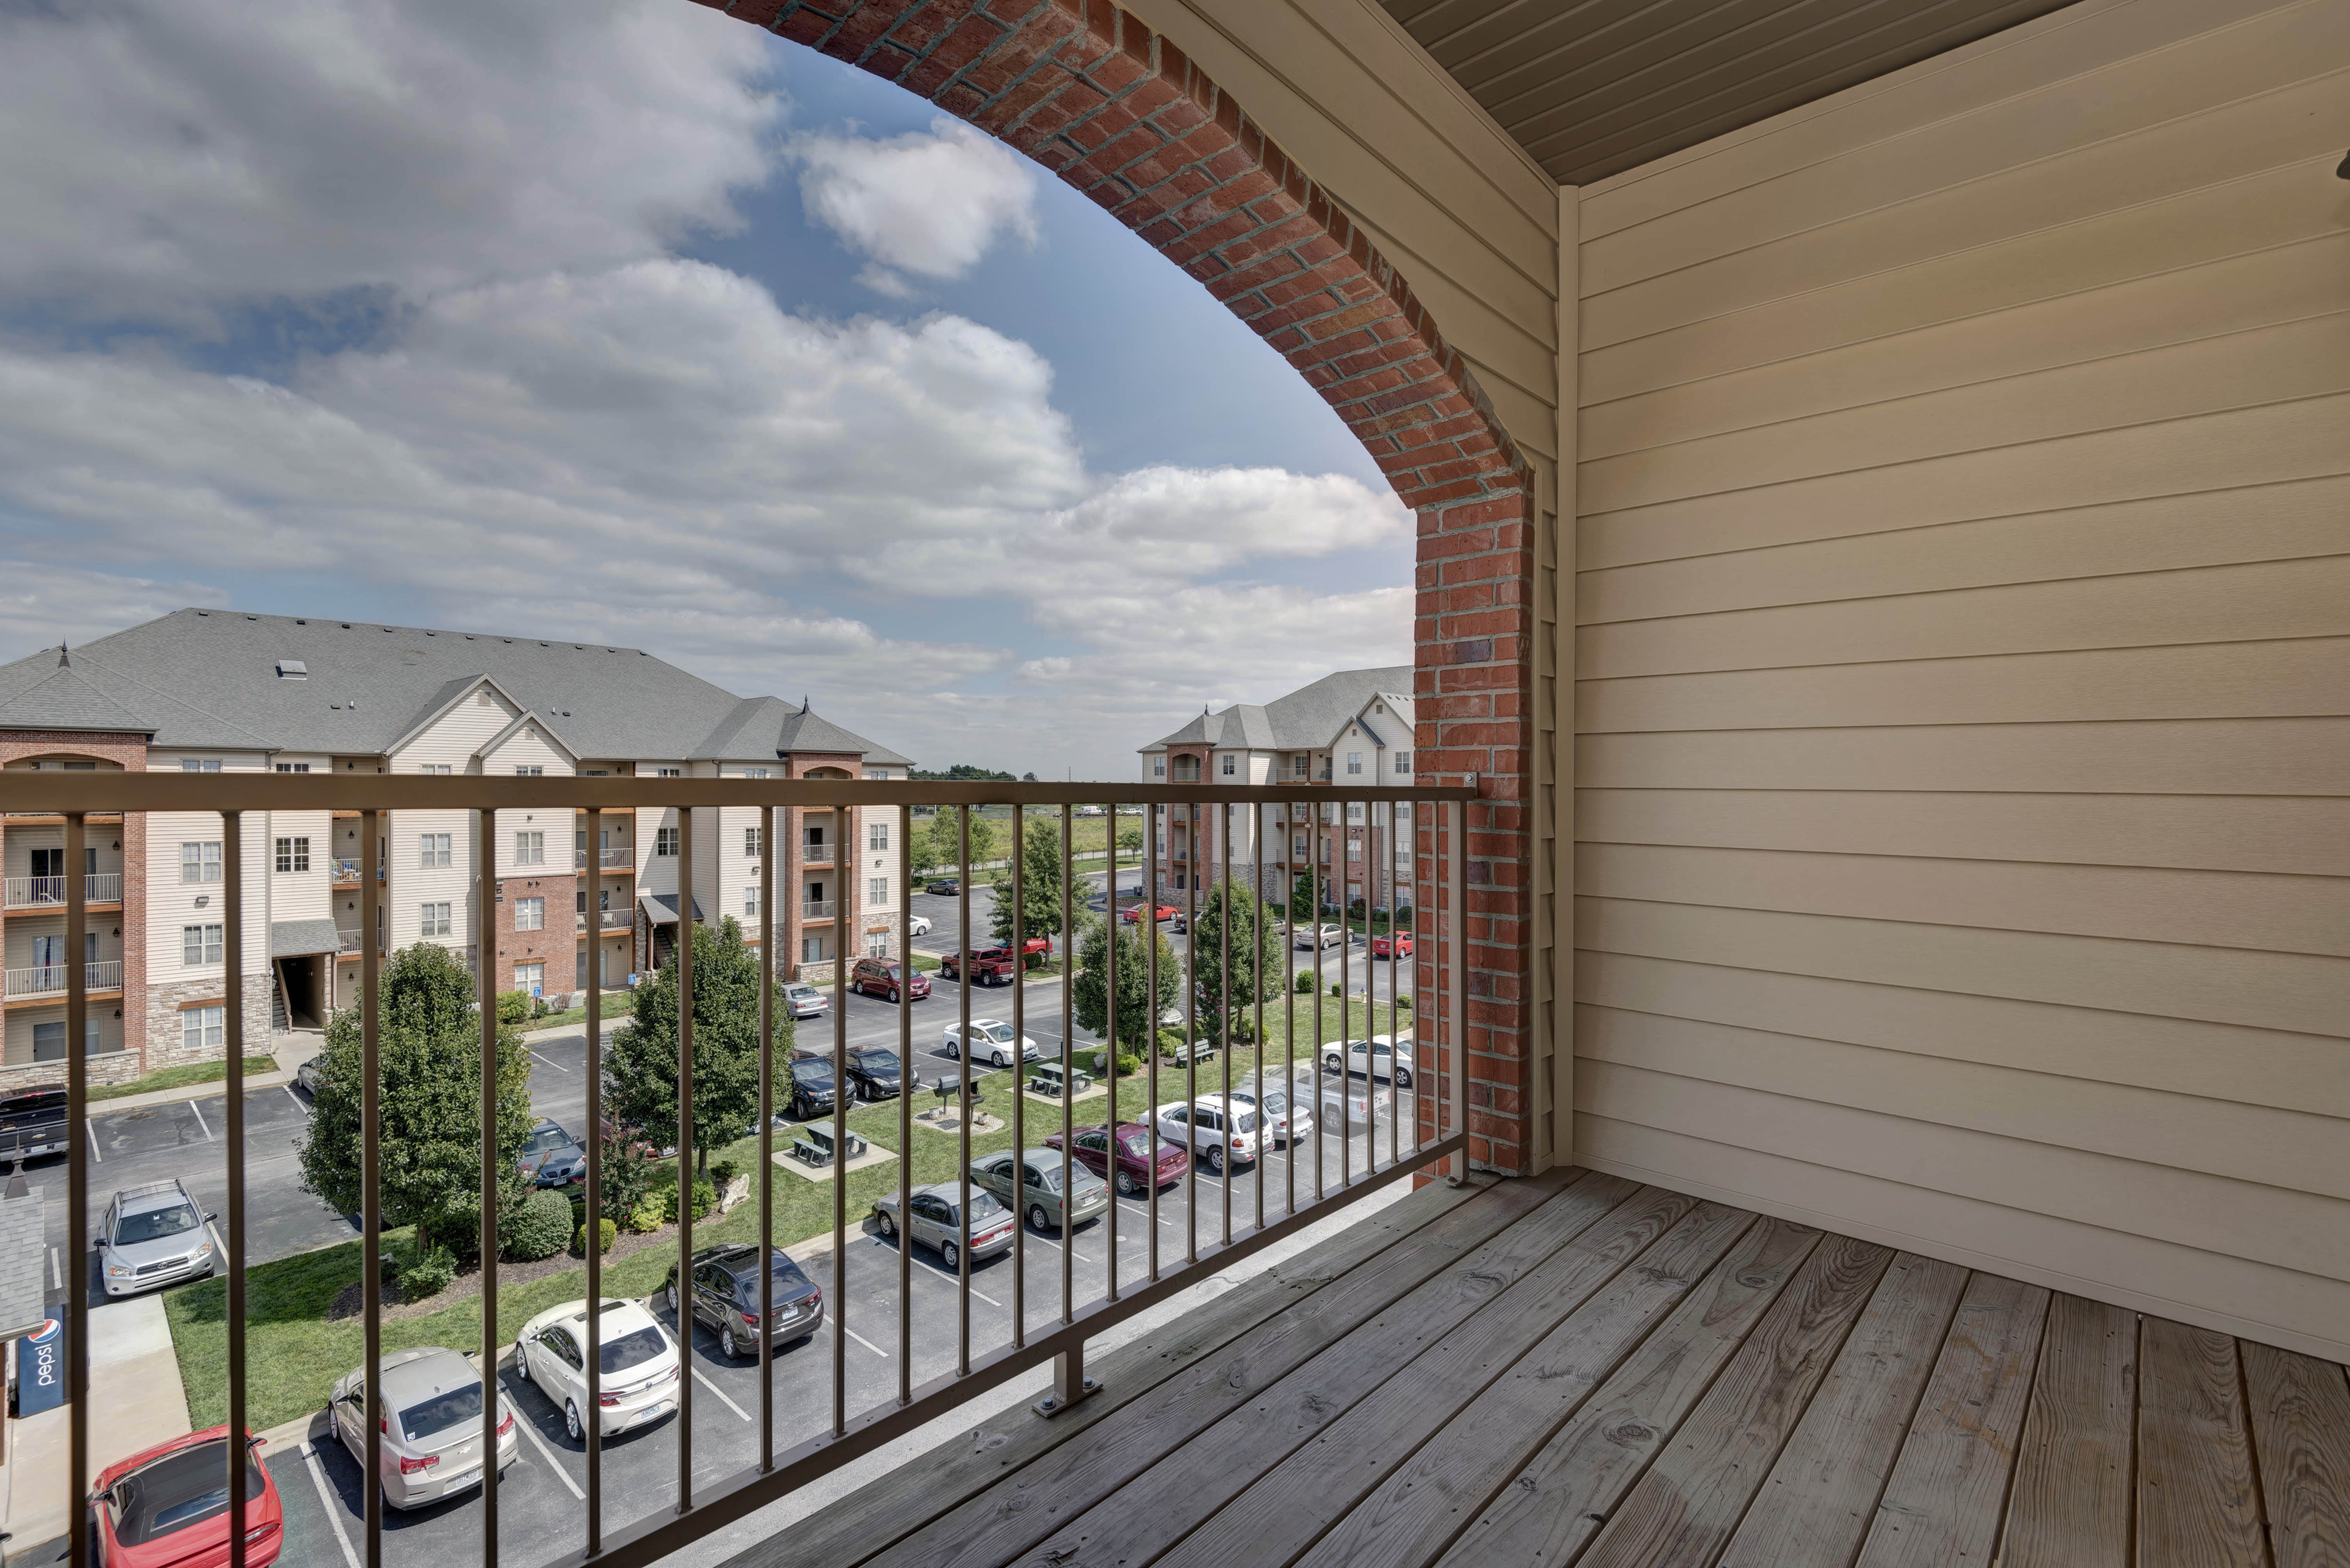 Coryell Courts balcony overlooking the apartment community